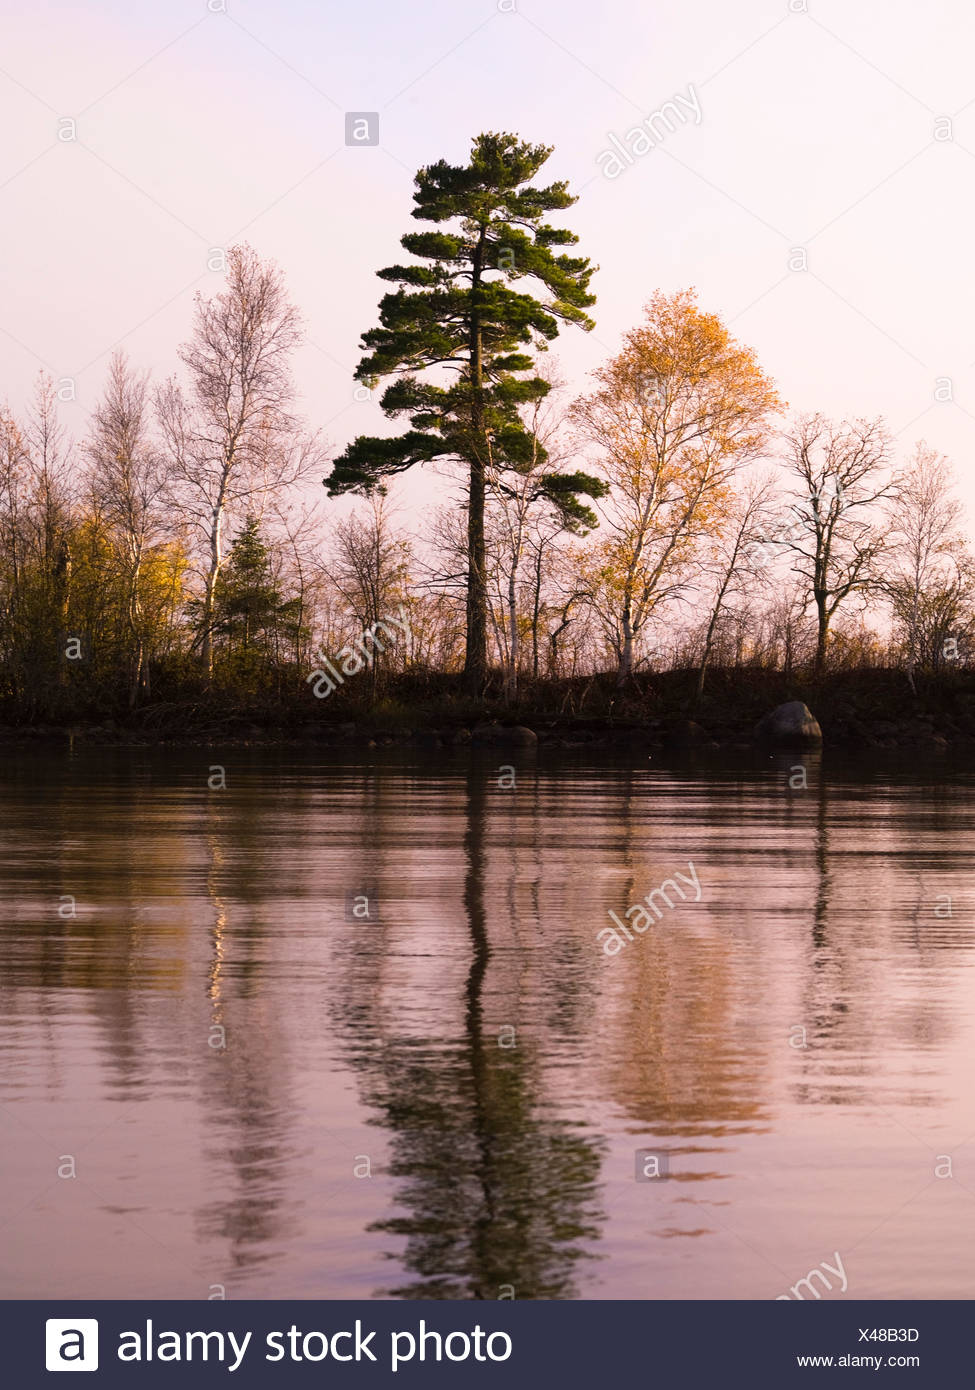 Trees reflected in a lake - Stock Image